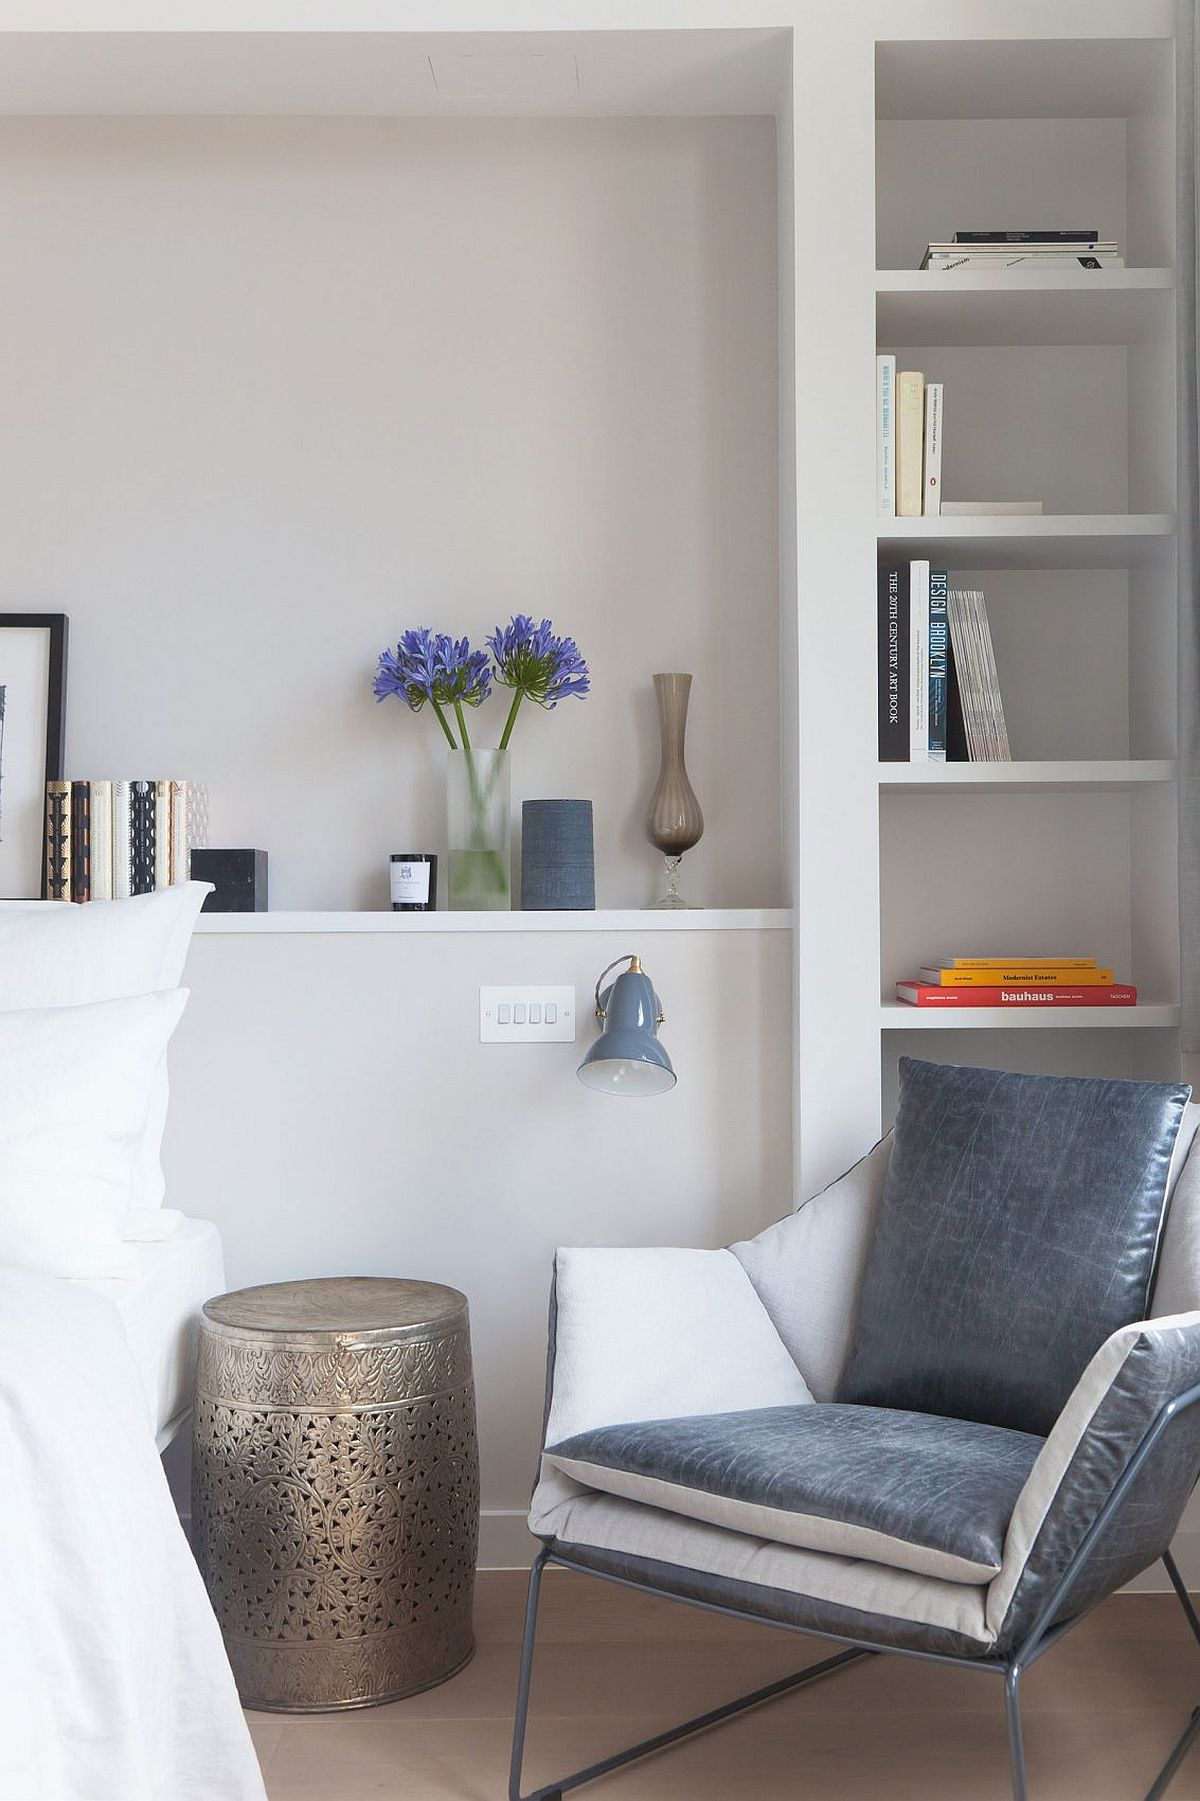 Nightstand adds a silvery touch to the bedroom in white